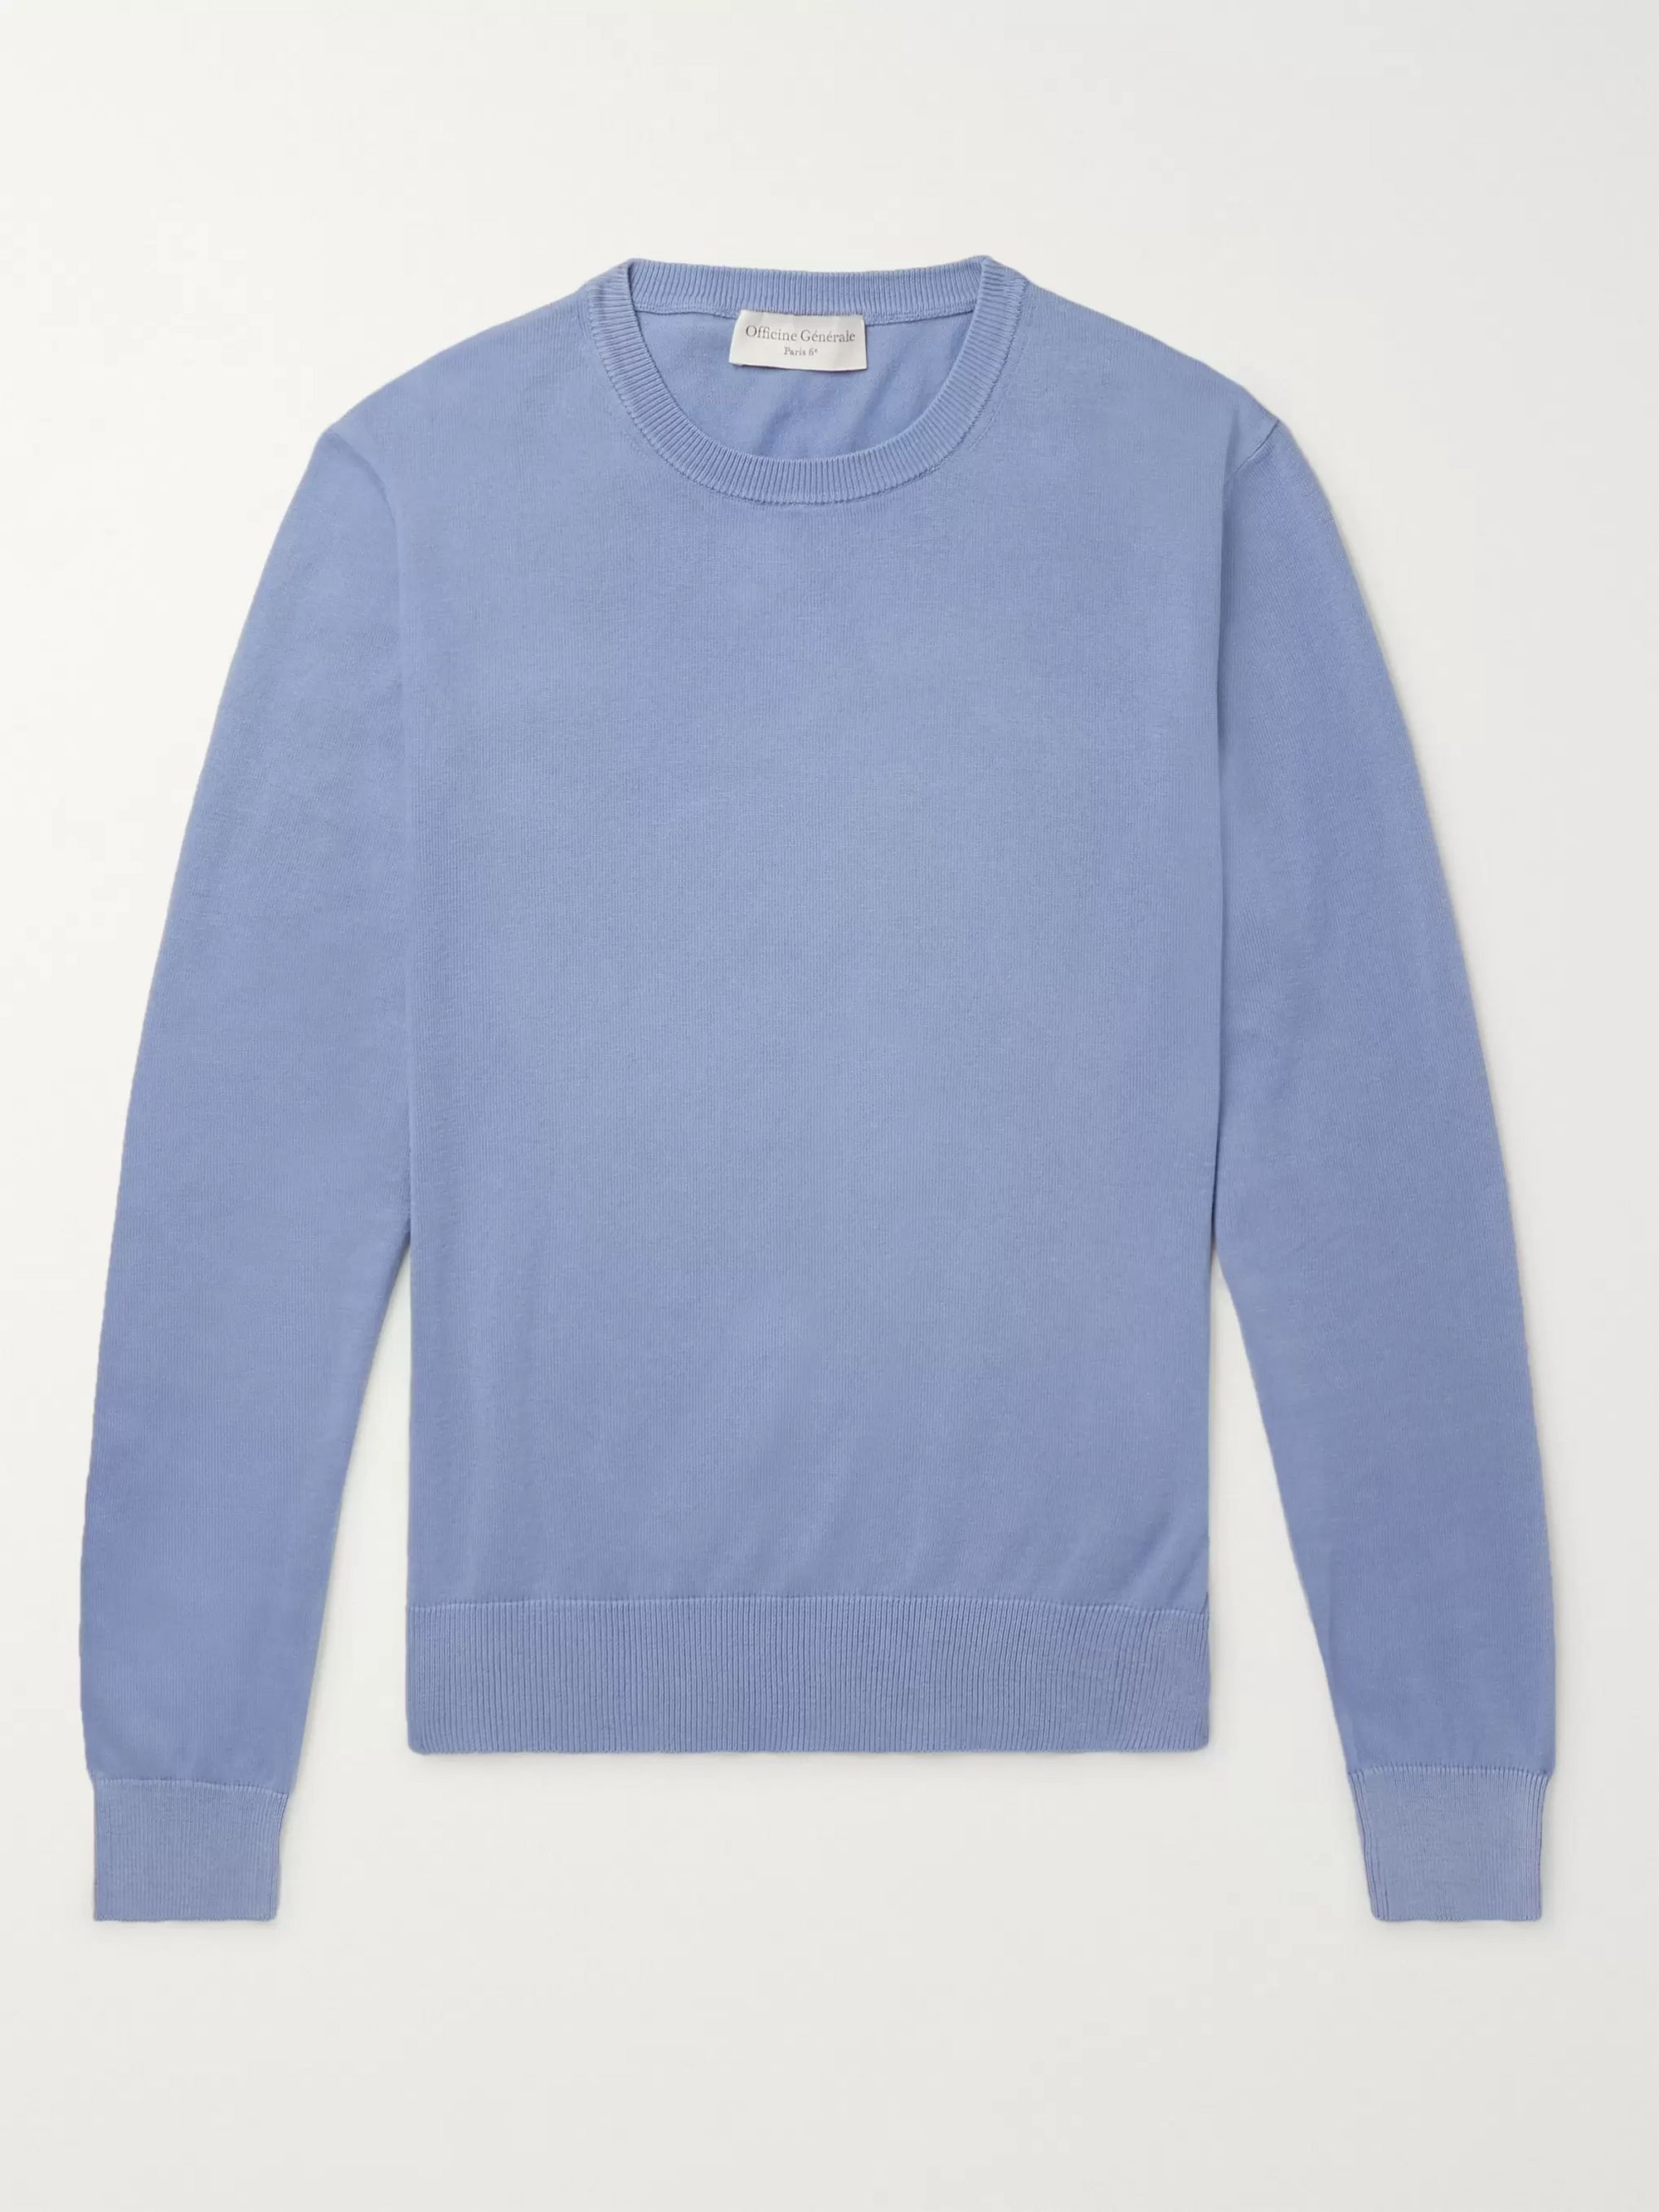 Officine Generale Neils Garment-Dyed Cotton Sweater